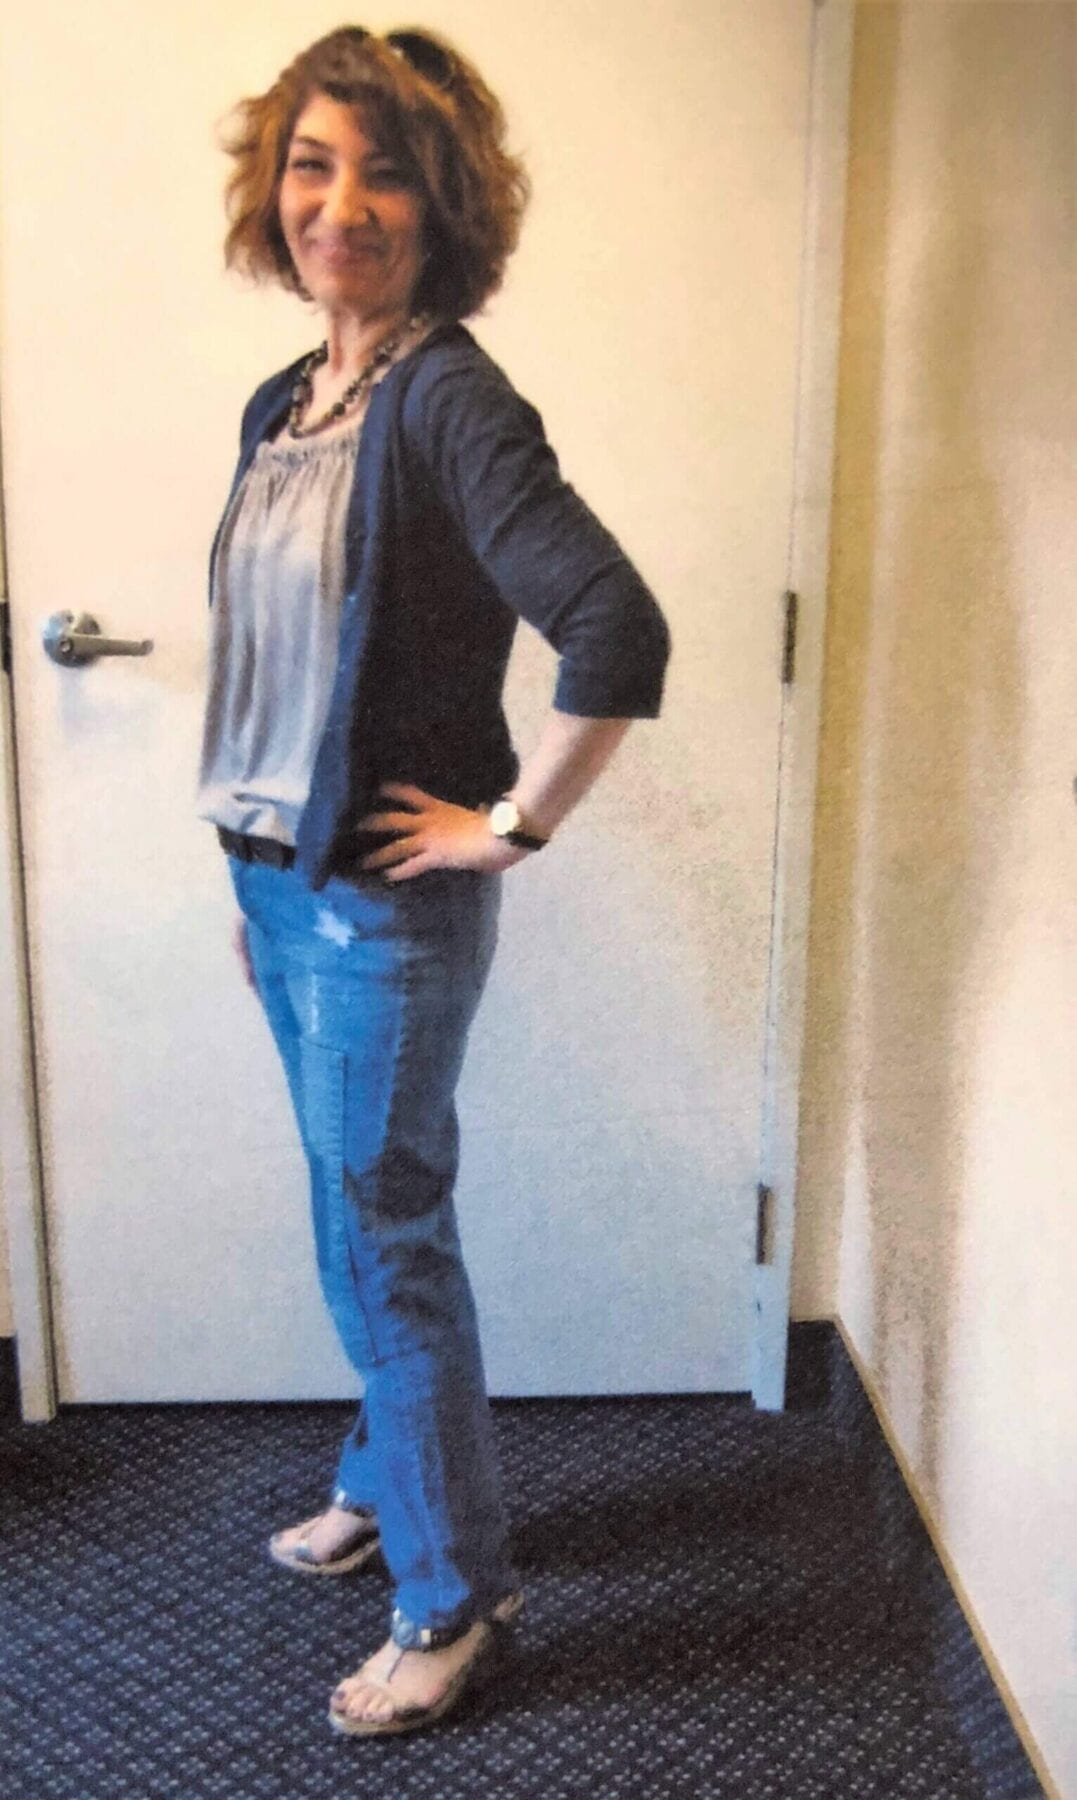 &Amp;Lt;H1 Class=&Amp;Quot;Hide_09&Amp;Quot;&Amp;Gt;Bariatric Surgery &Amp;Lt;Br&Amp;Gt;Before And After - Selina B.&Amp;Lt;/H1&Amp;Gt;   Success_Storie   The Weight Loss Surgery Center Of Los Angeles   Dr. David Davtyan